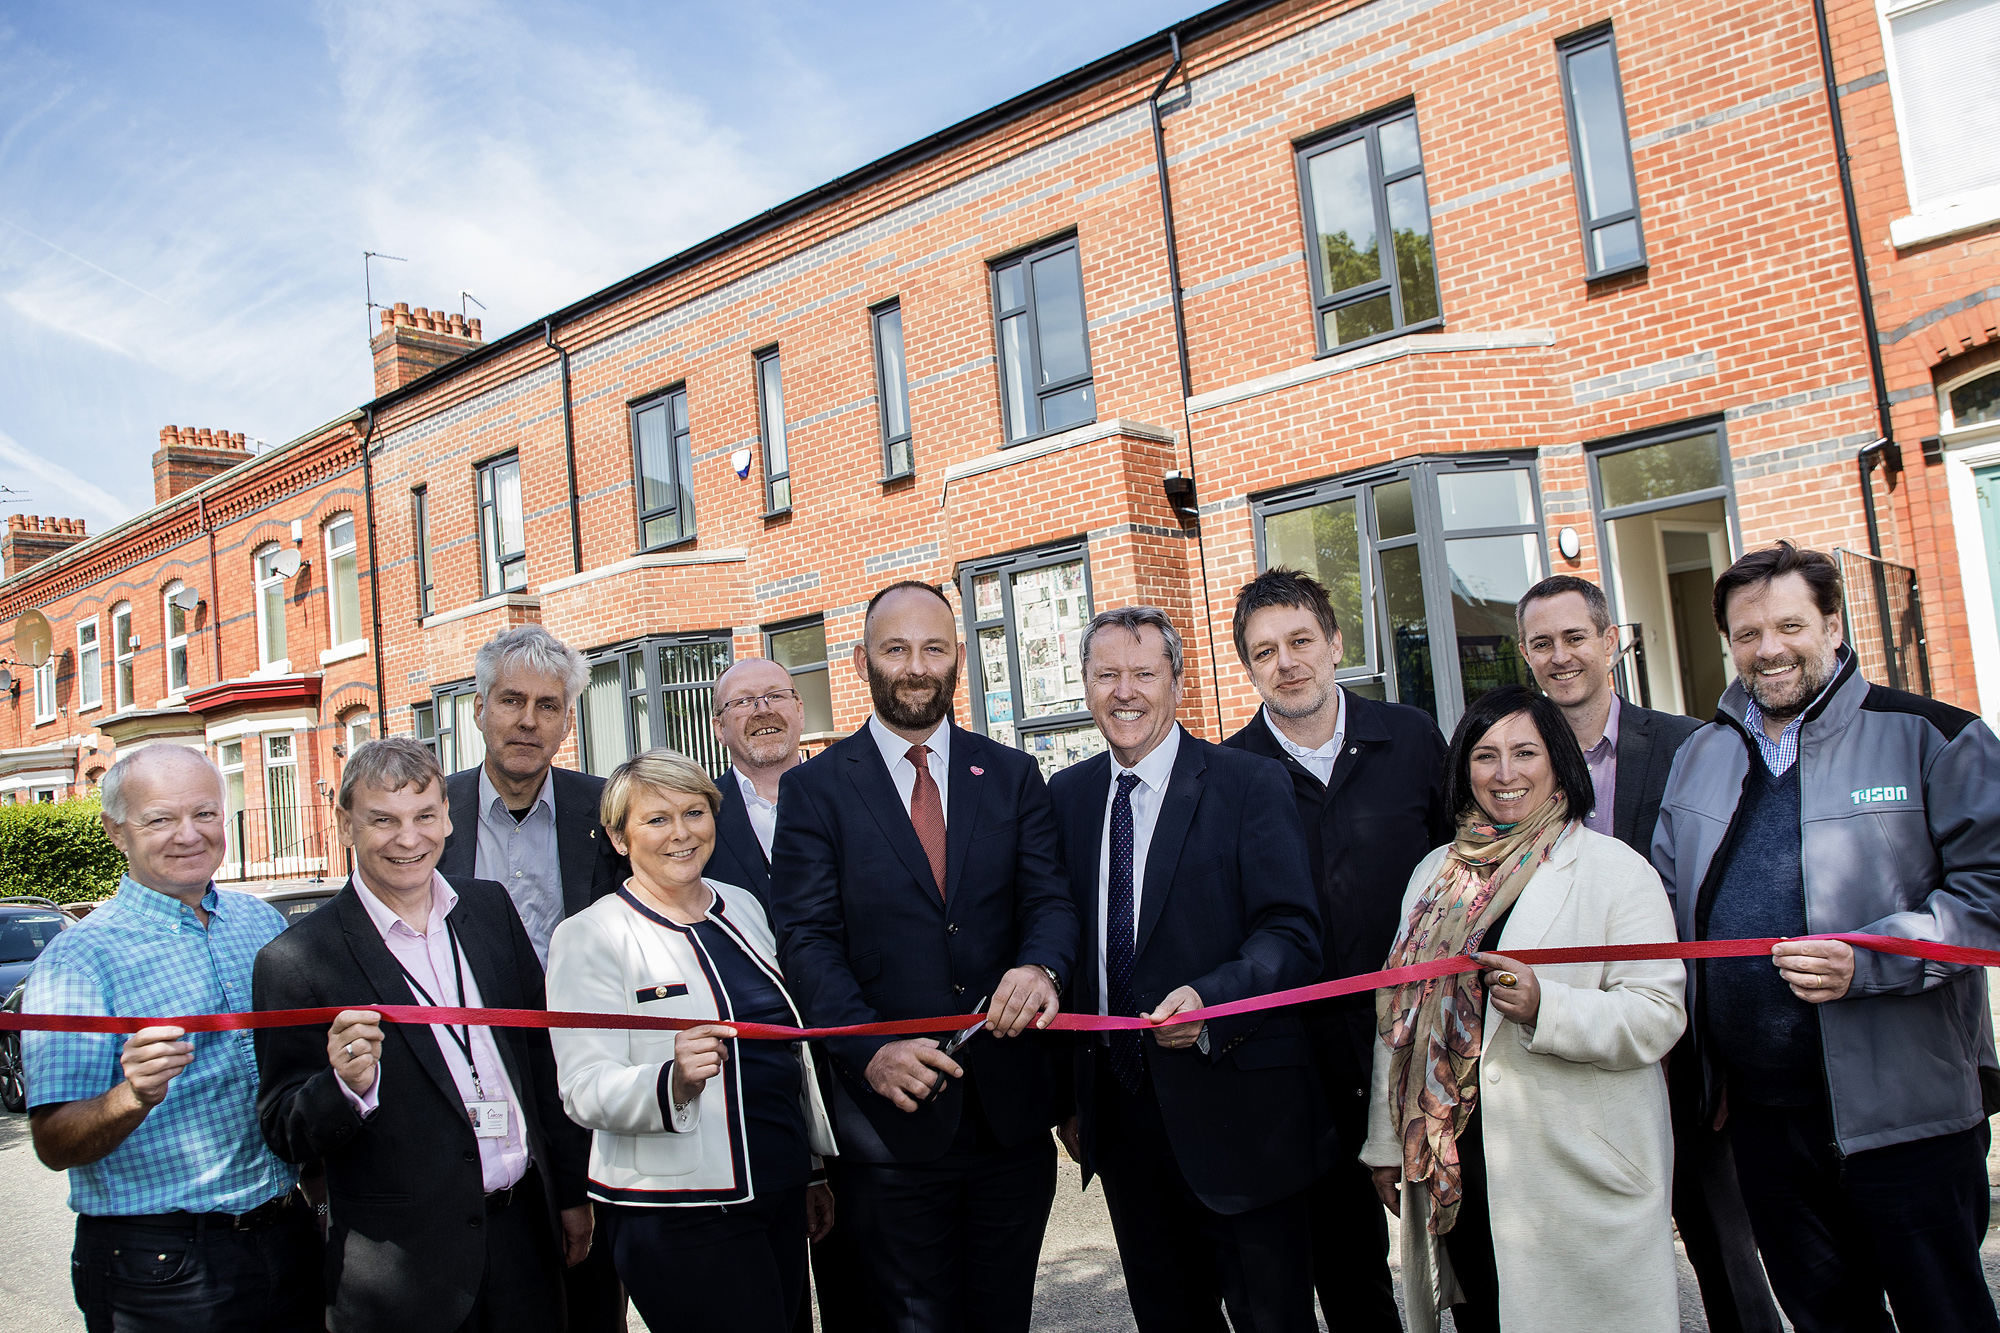 Greater Manchester Housing Portfolio Holder launches Arcon's regeneration of Trafford